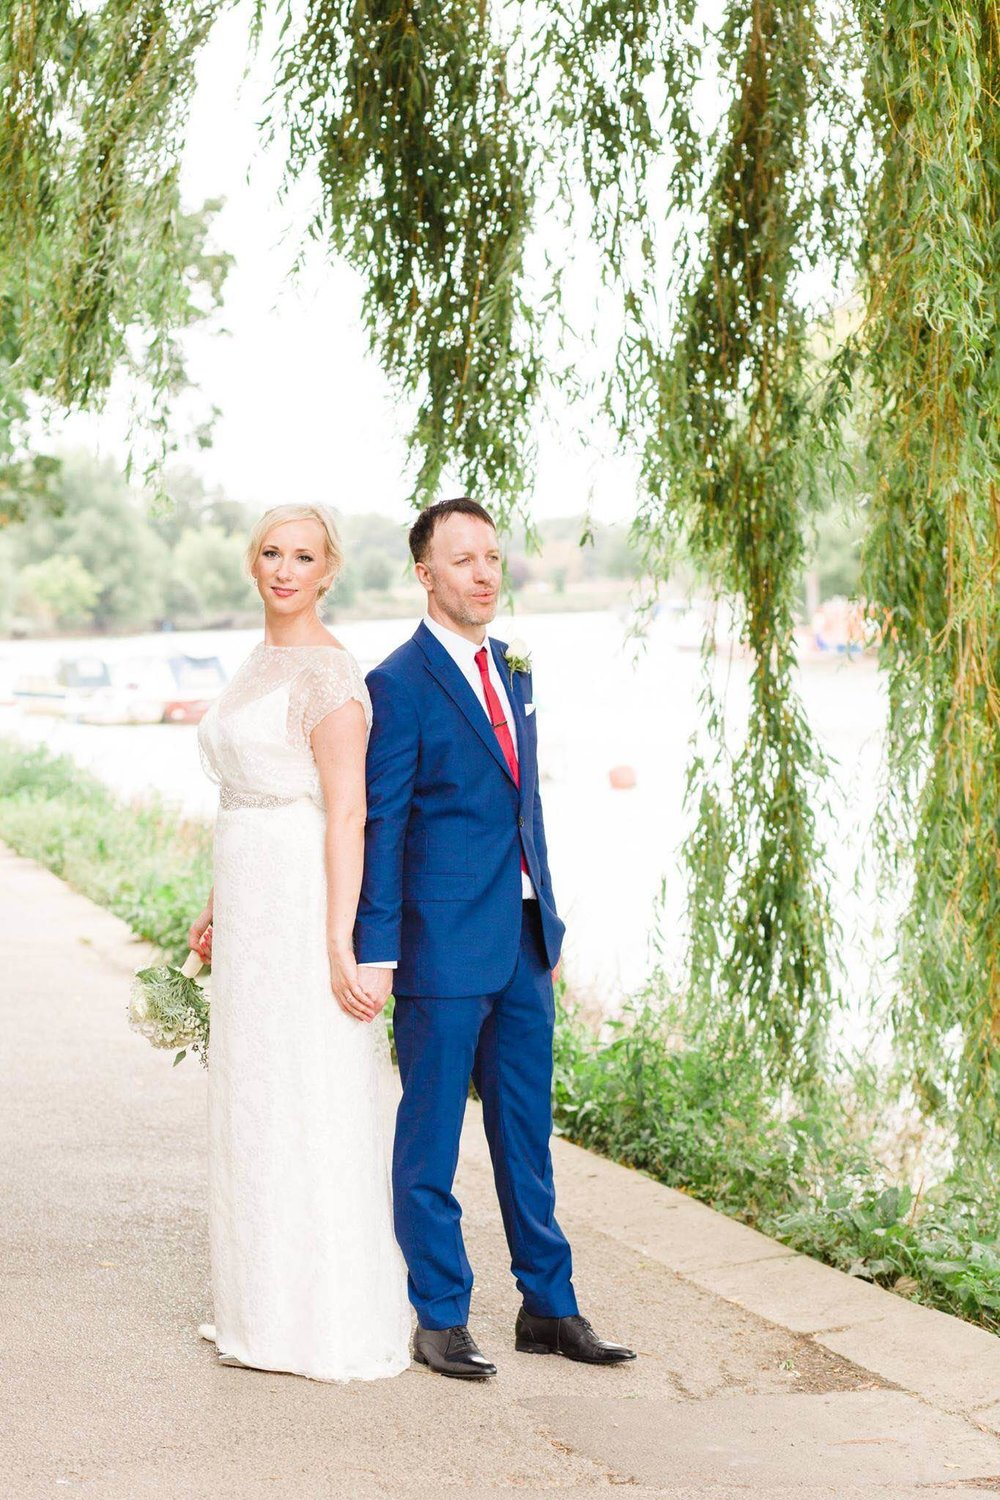 Gorgeous bride Natalie wears a wedding dress by Halfpenny London